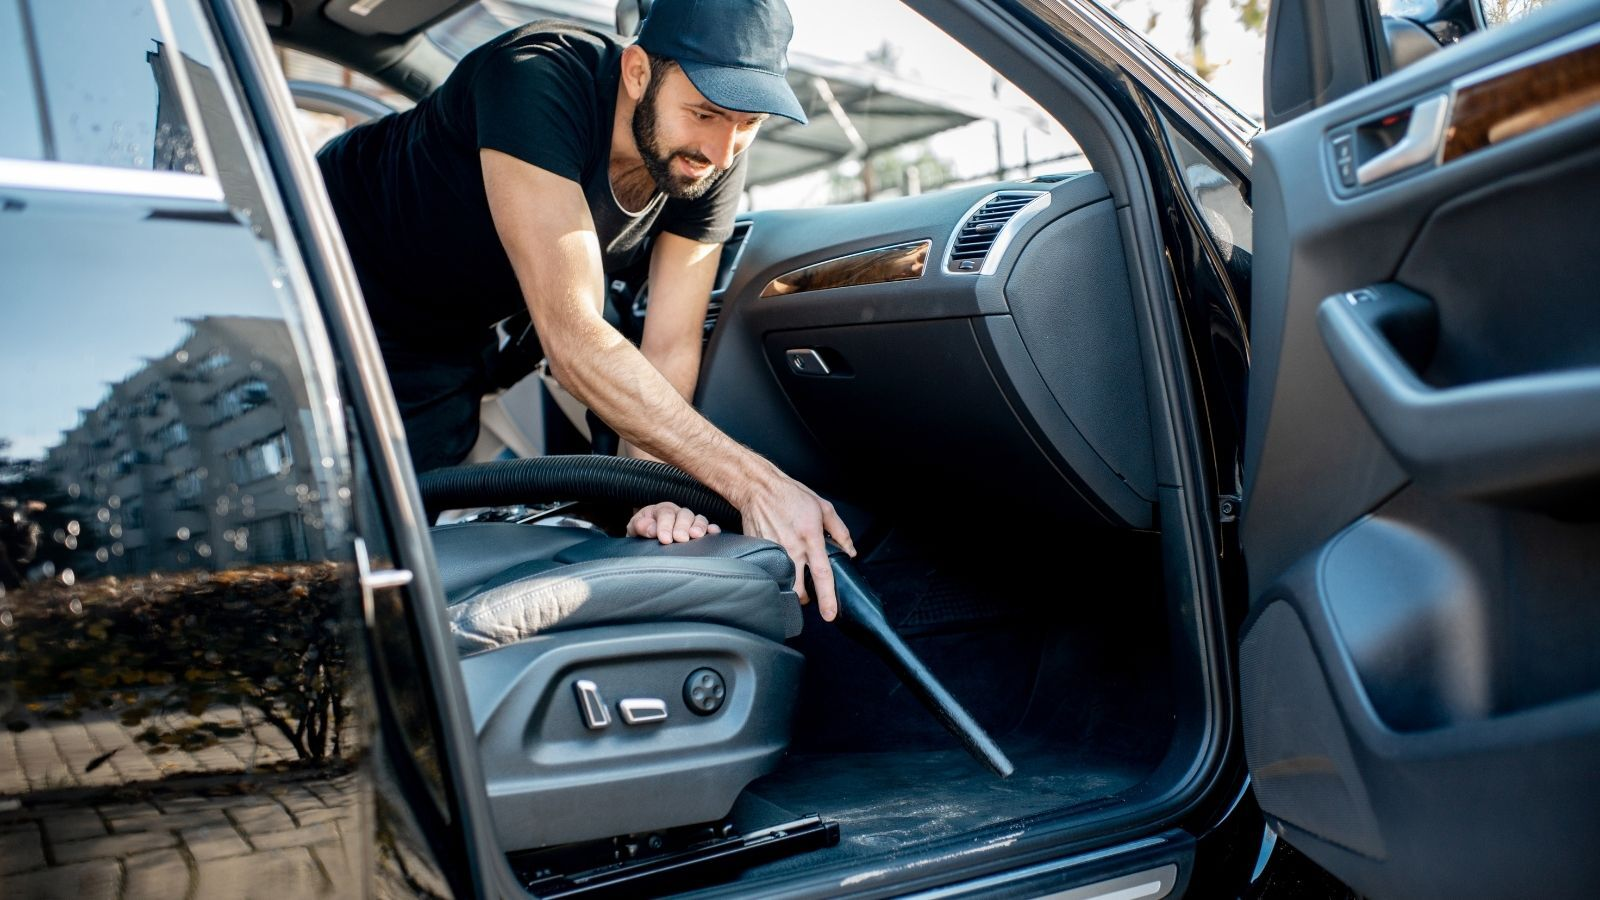 Vacuum The Car to Remove Smoke Smell